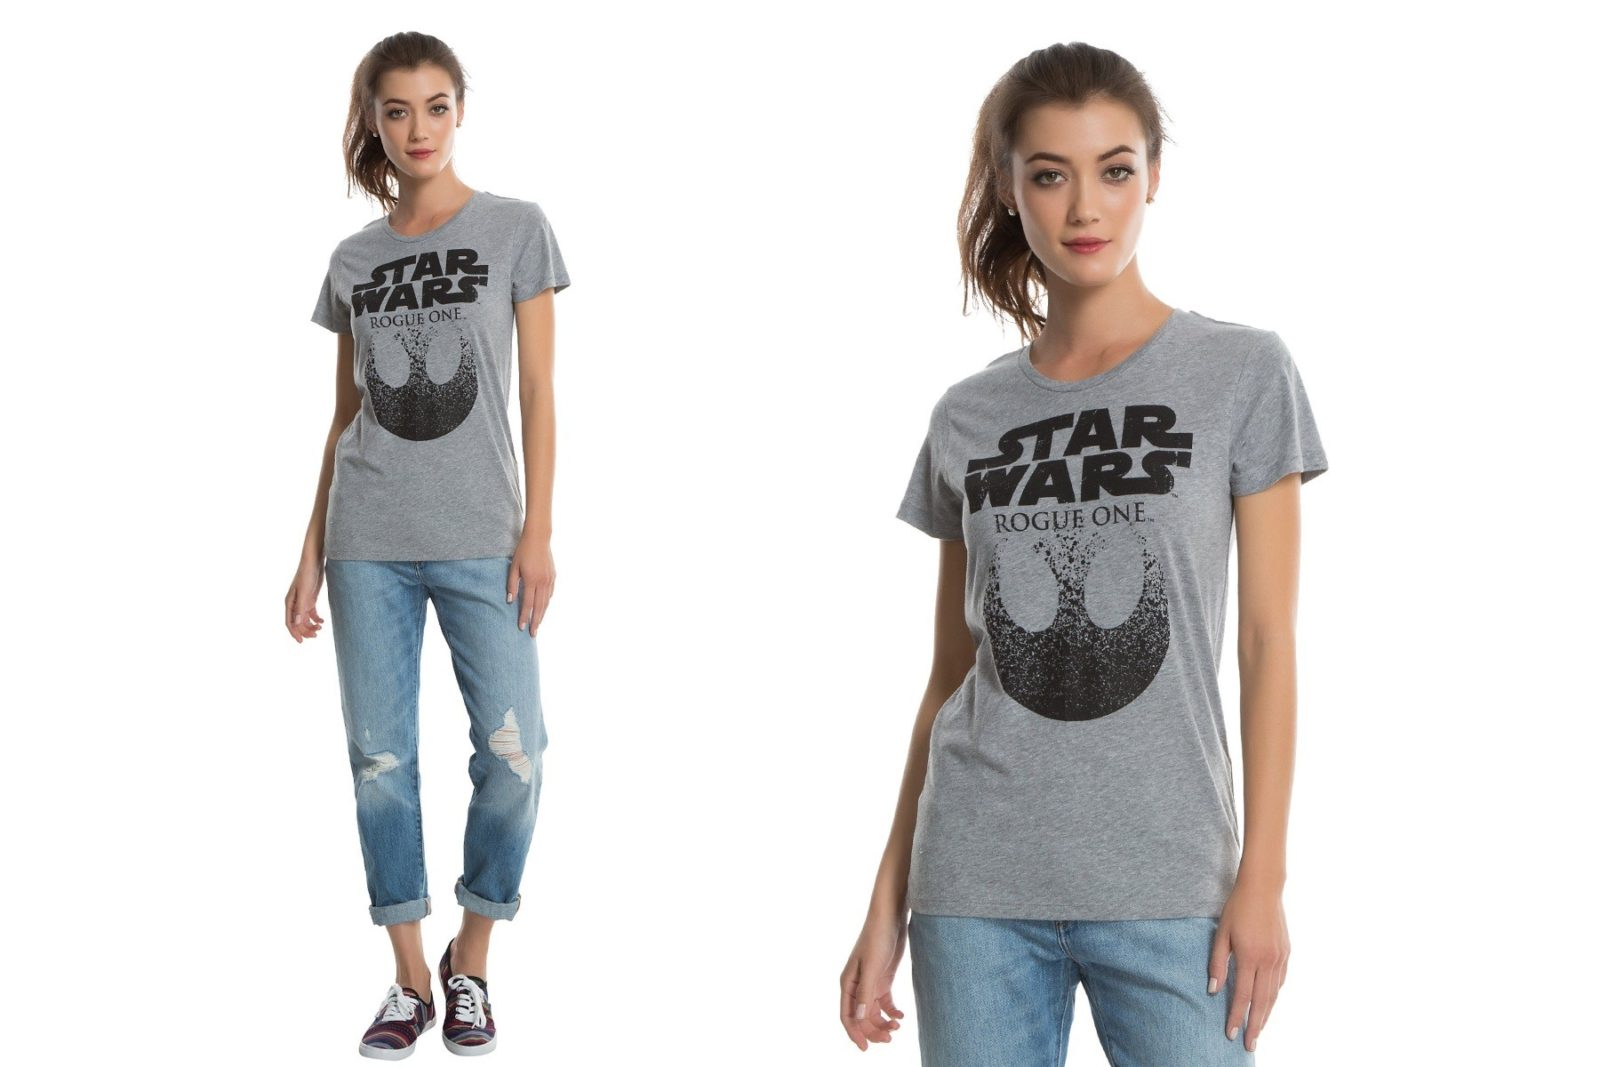 New women's Rogue One tee at Hot Topic